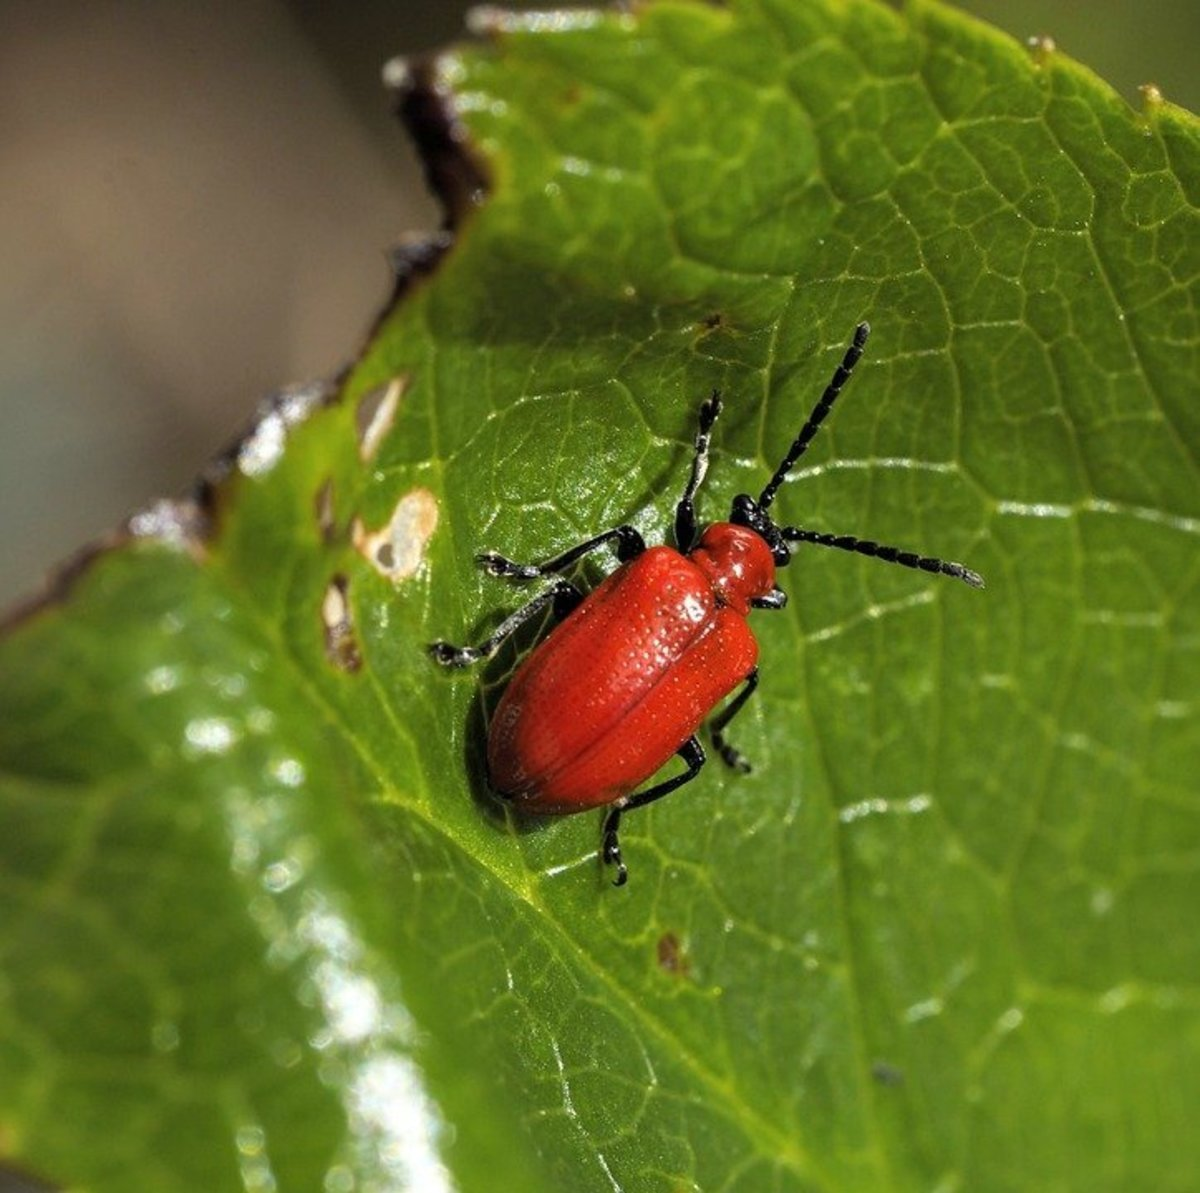 The Lily Beetle